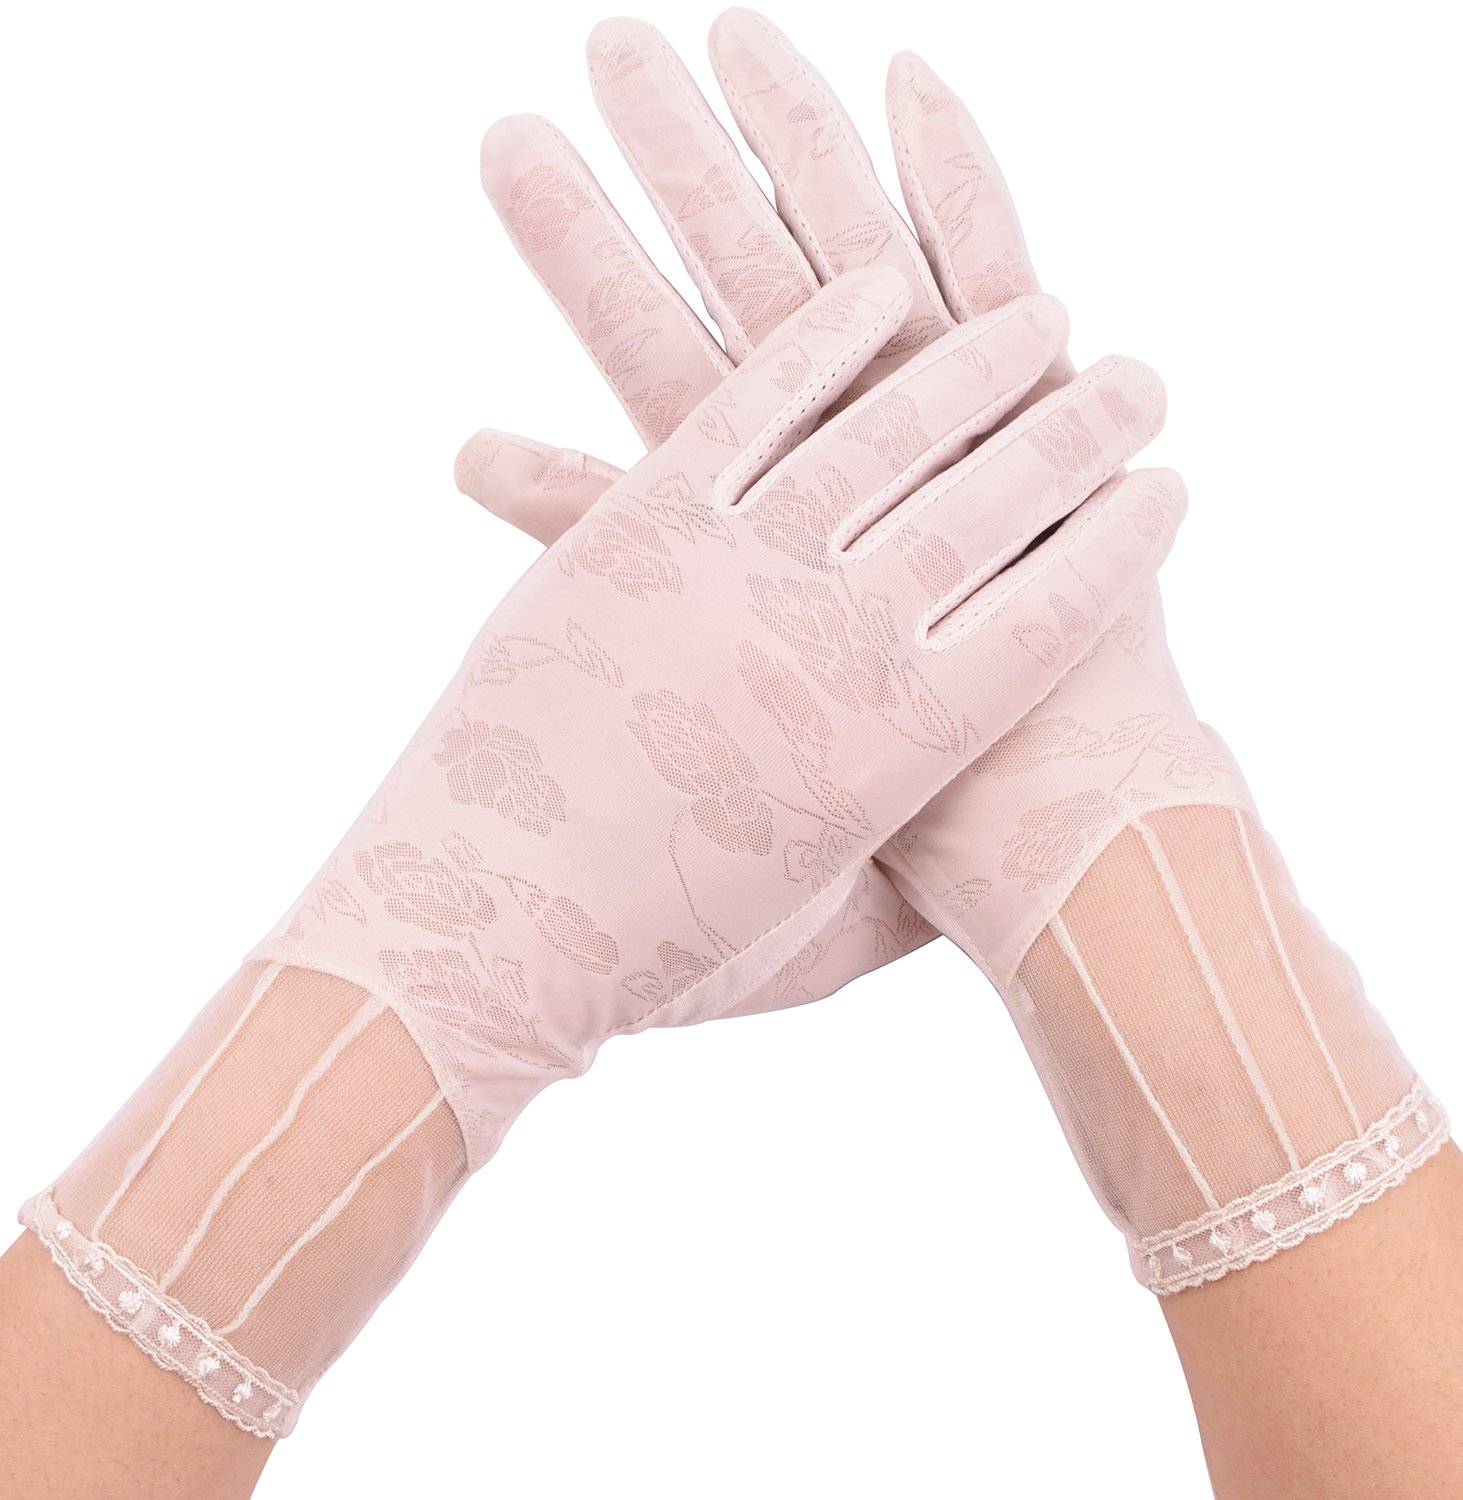 Ladies Summer Driving Gloves Lace Sunscreen Gloves Anti Skid Touchscreen Gloves Beige